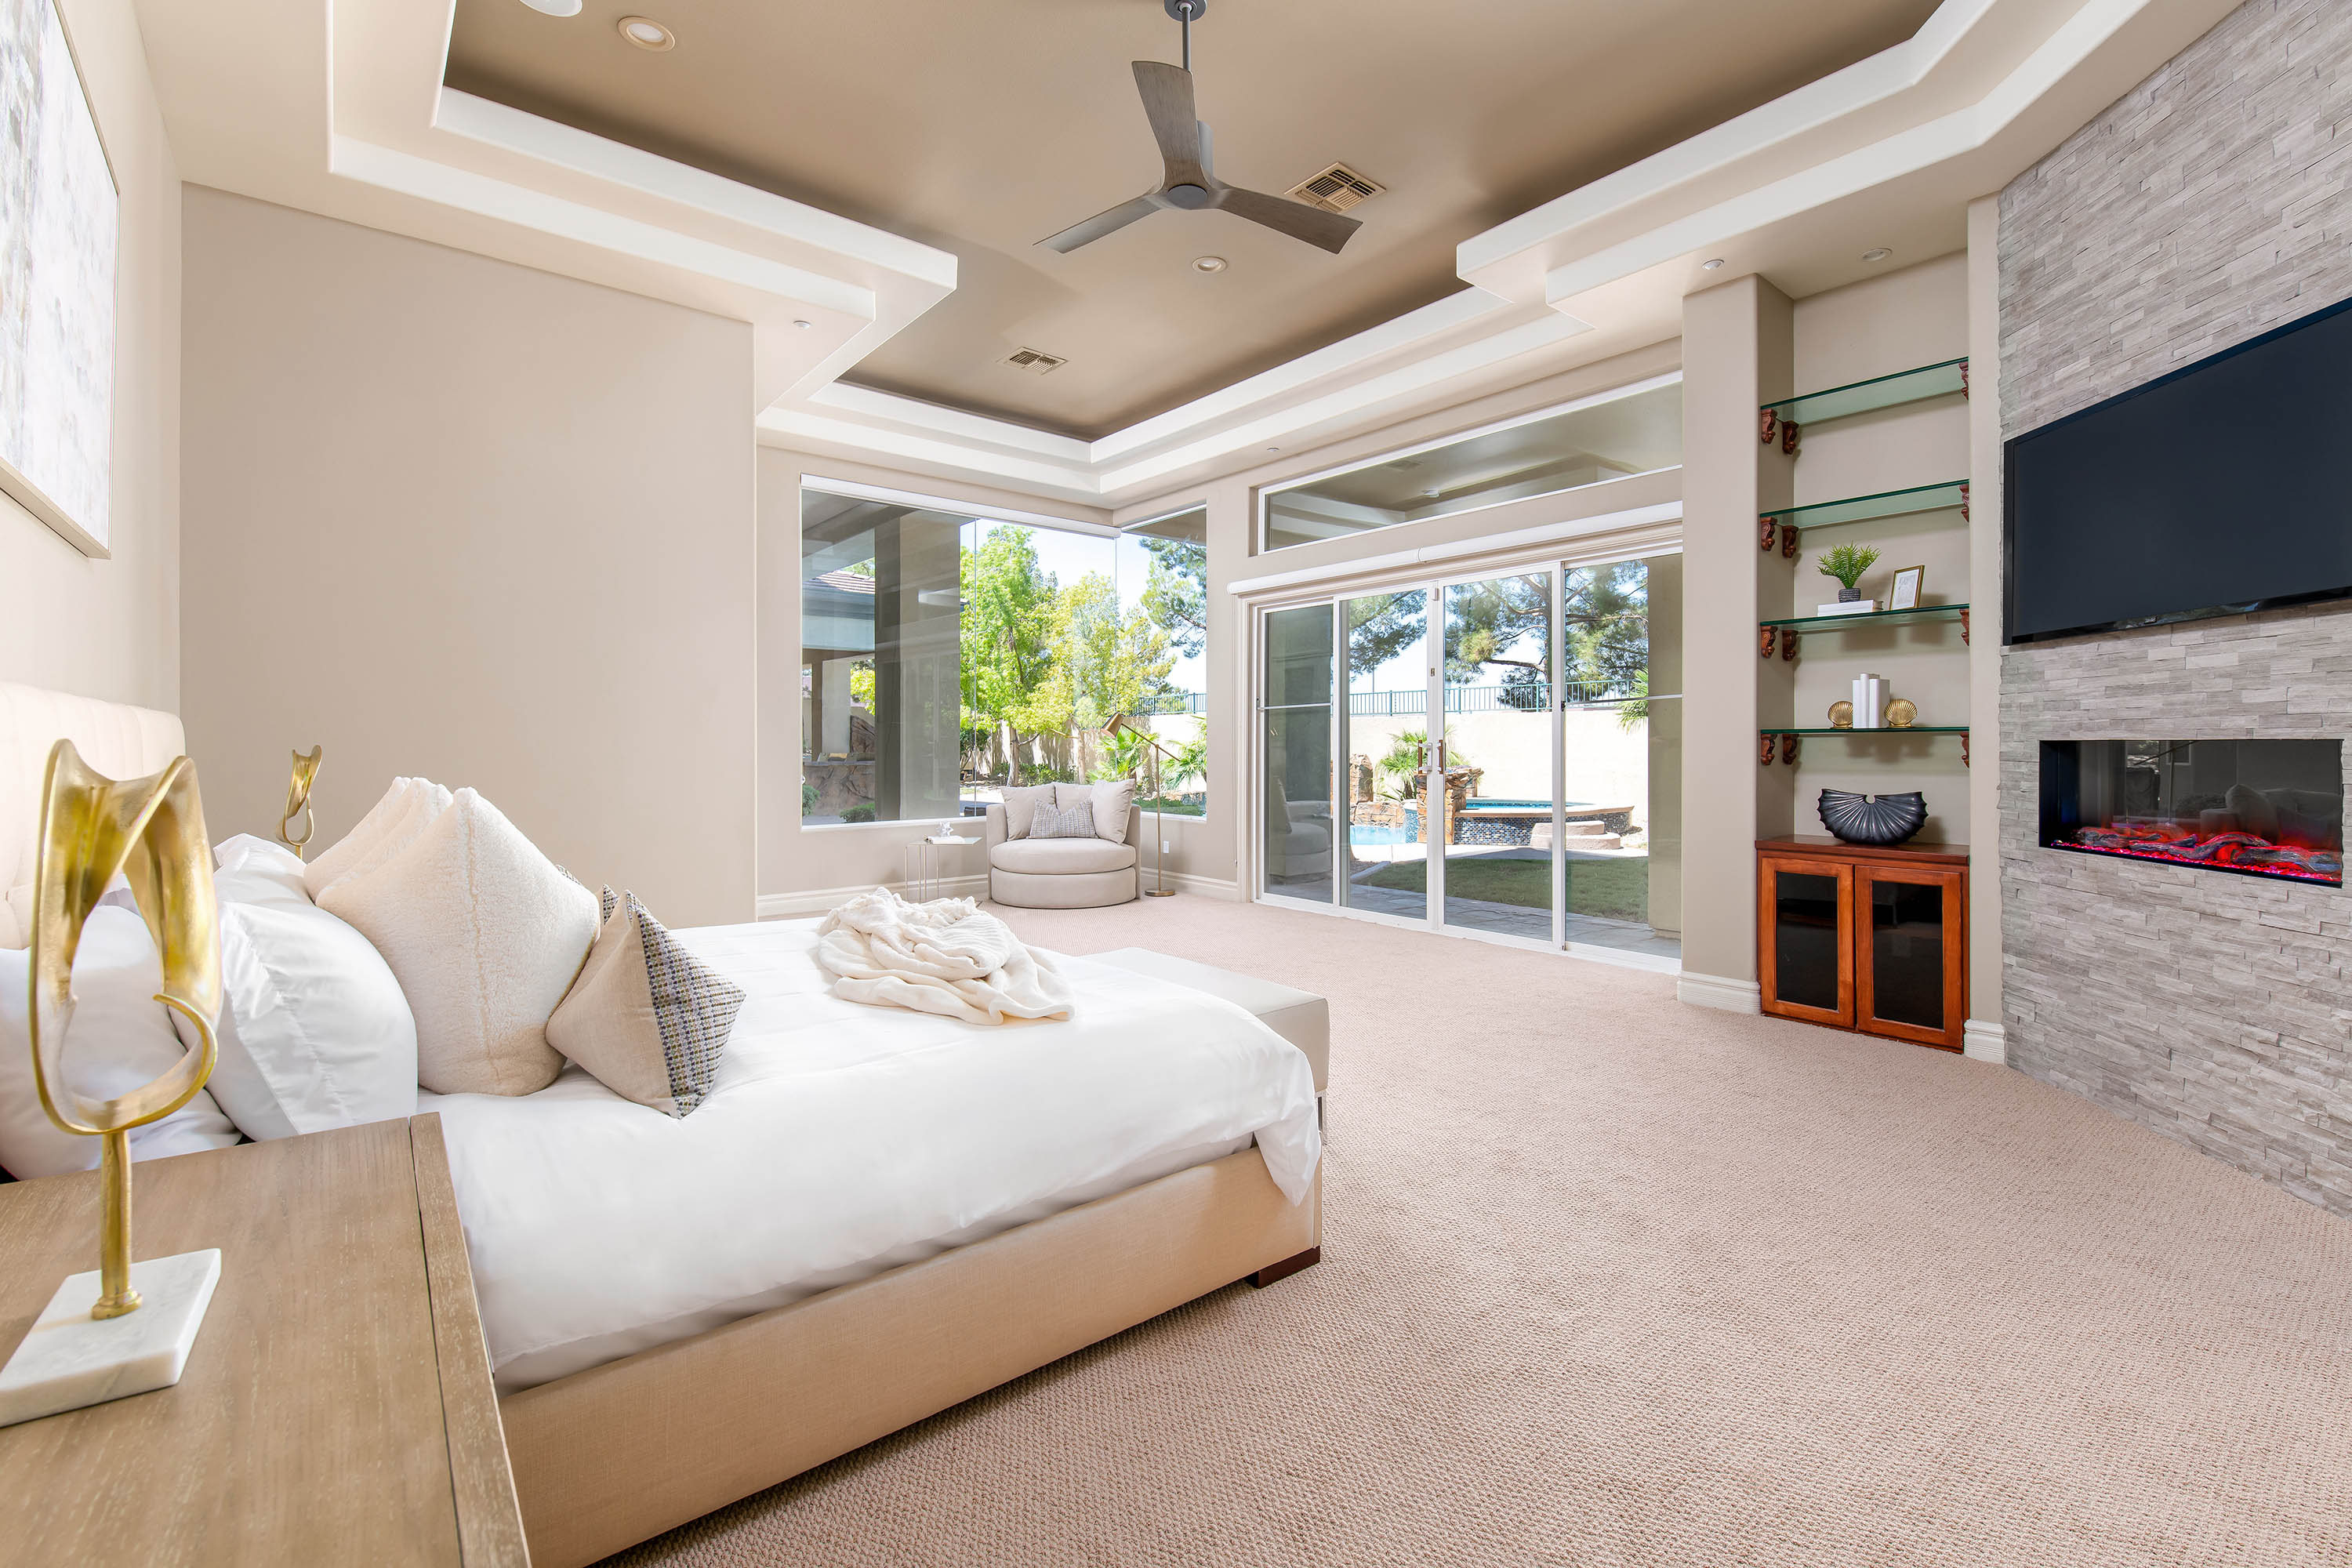 Stately_Home_Staging-2297_FA-014-Master_Bedroom.jpg